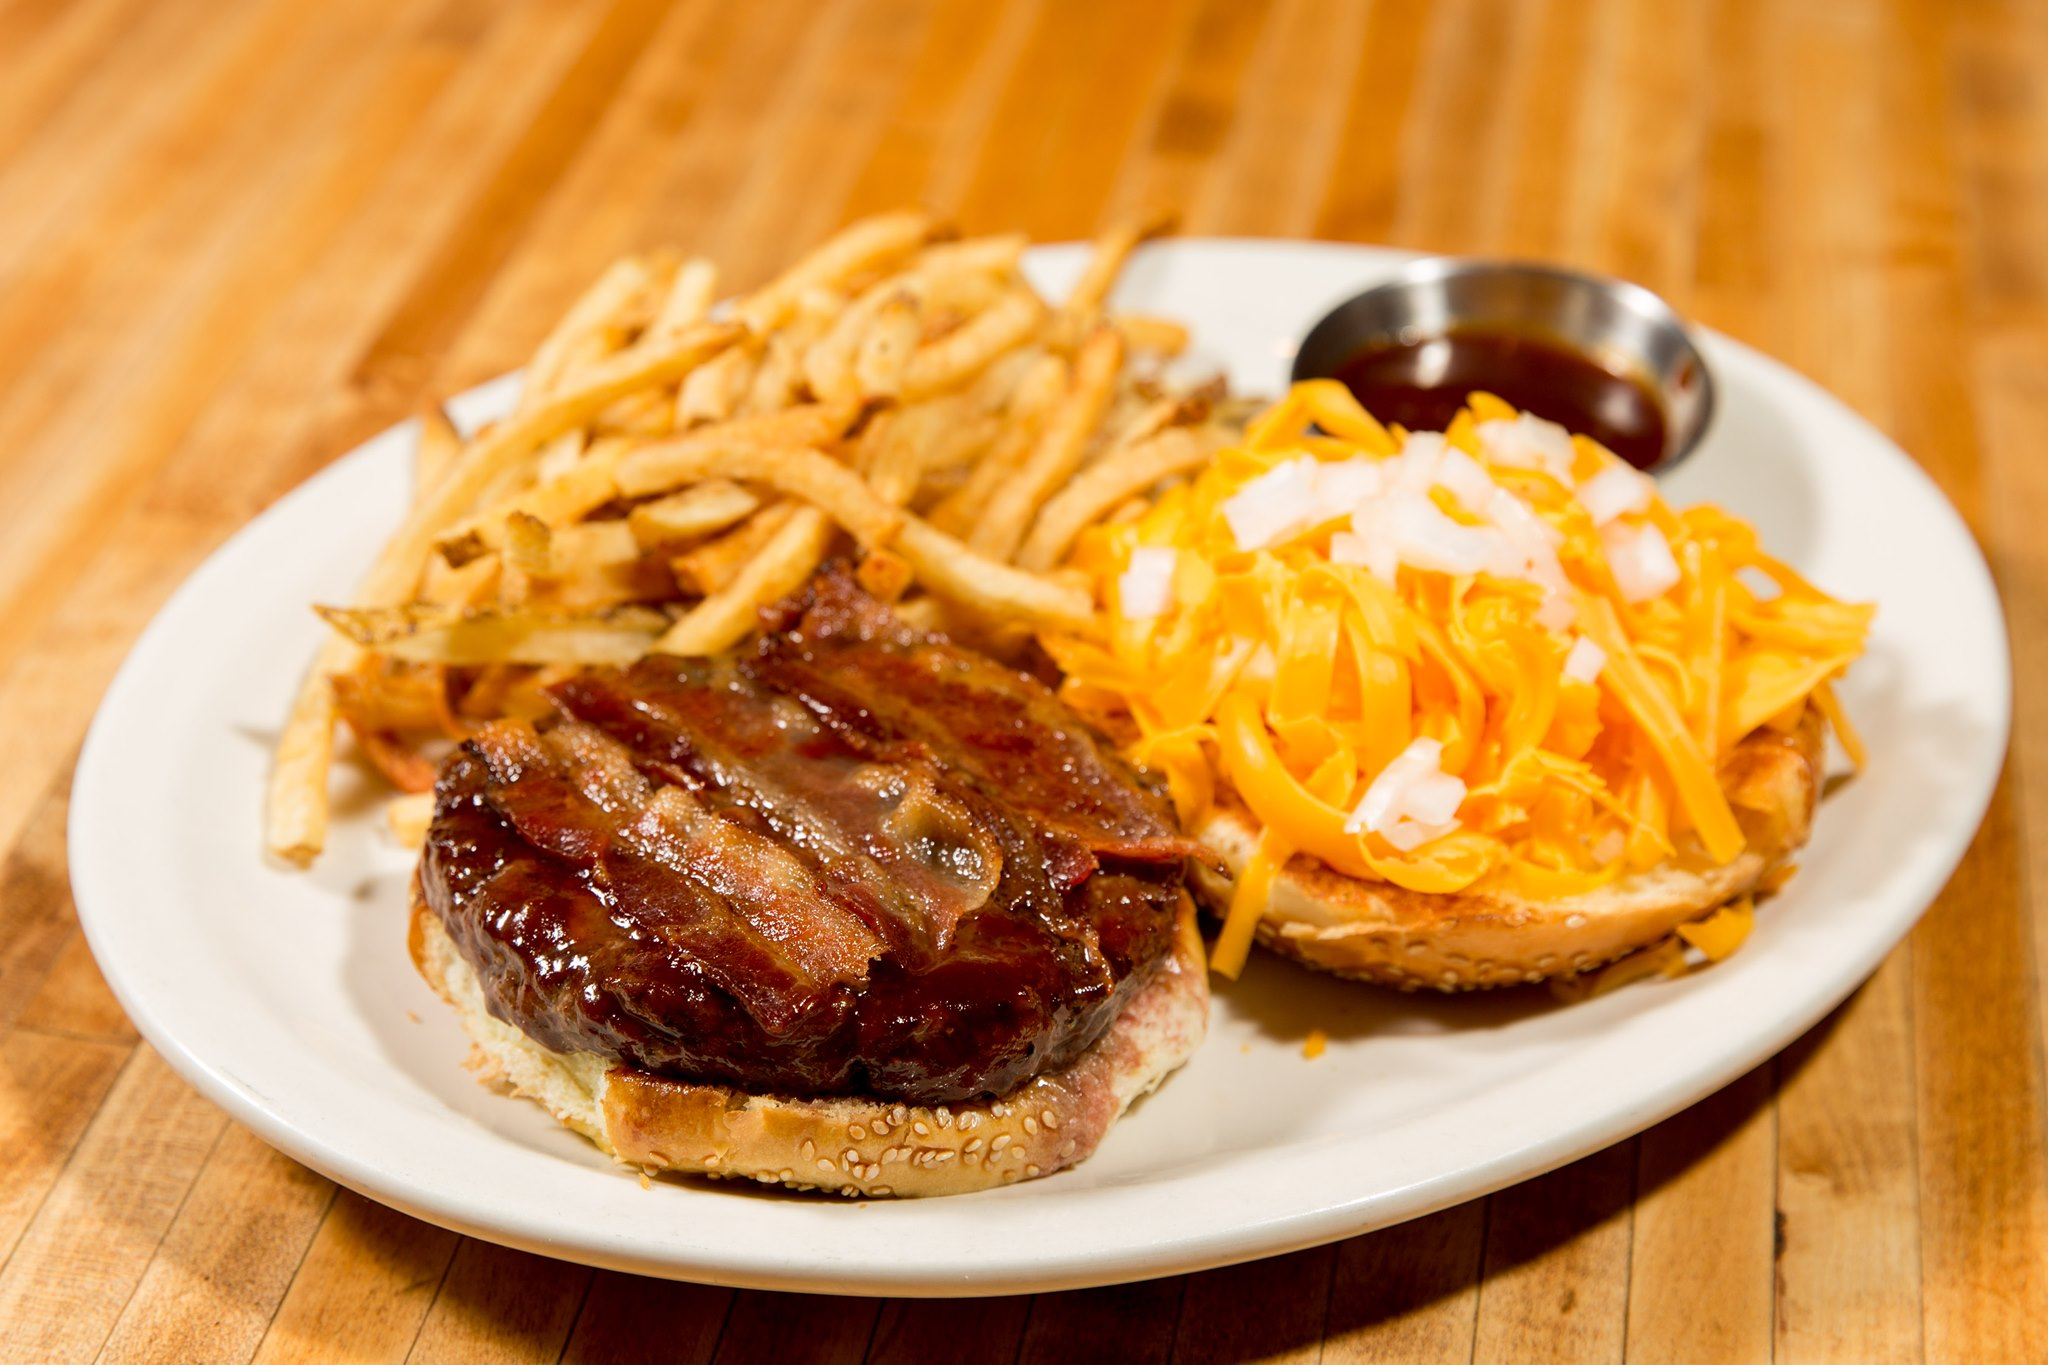 Try Our BBQ Bacon Burger